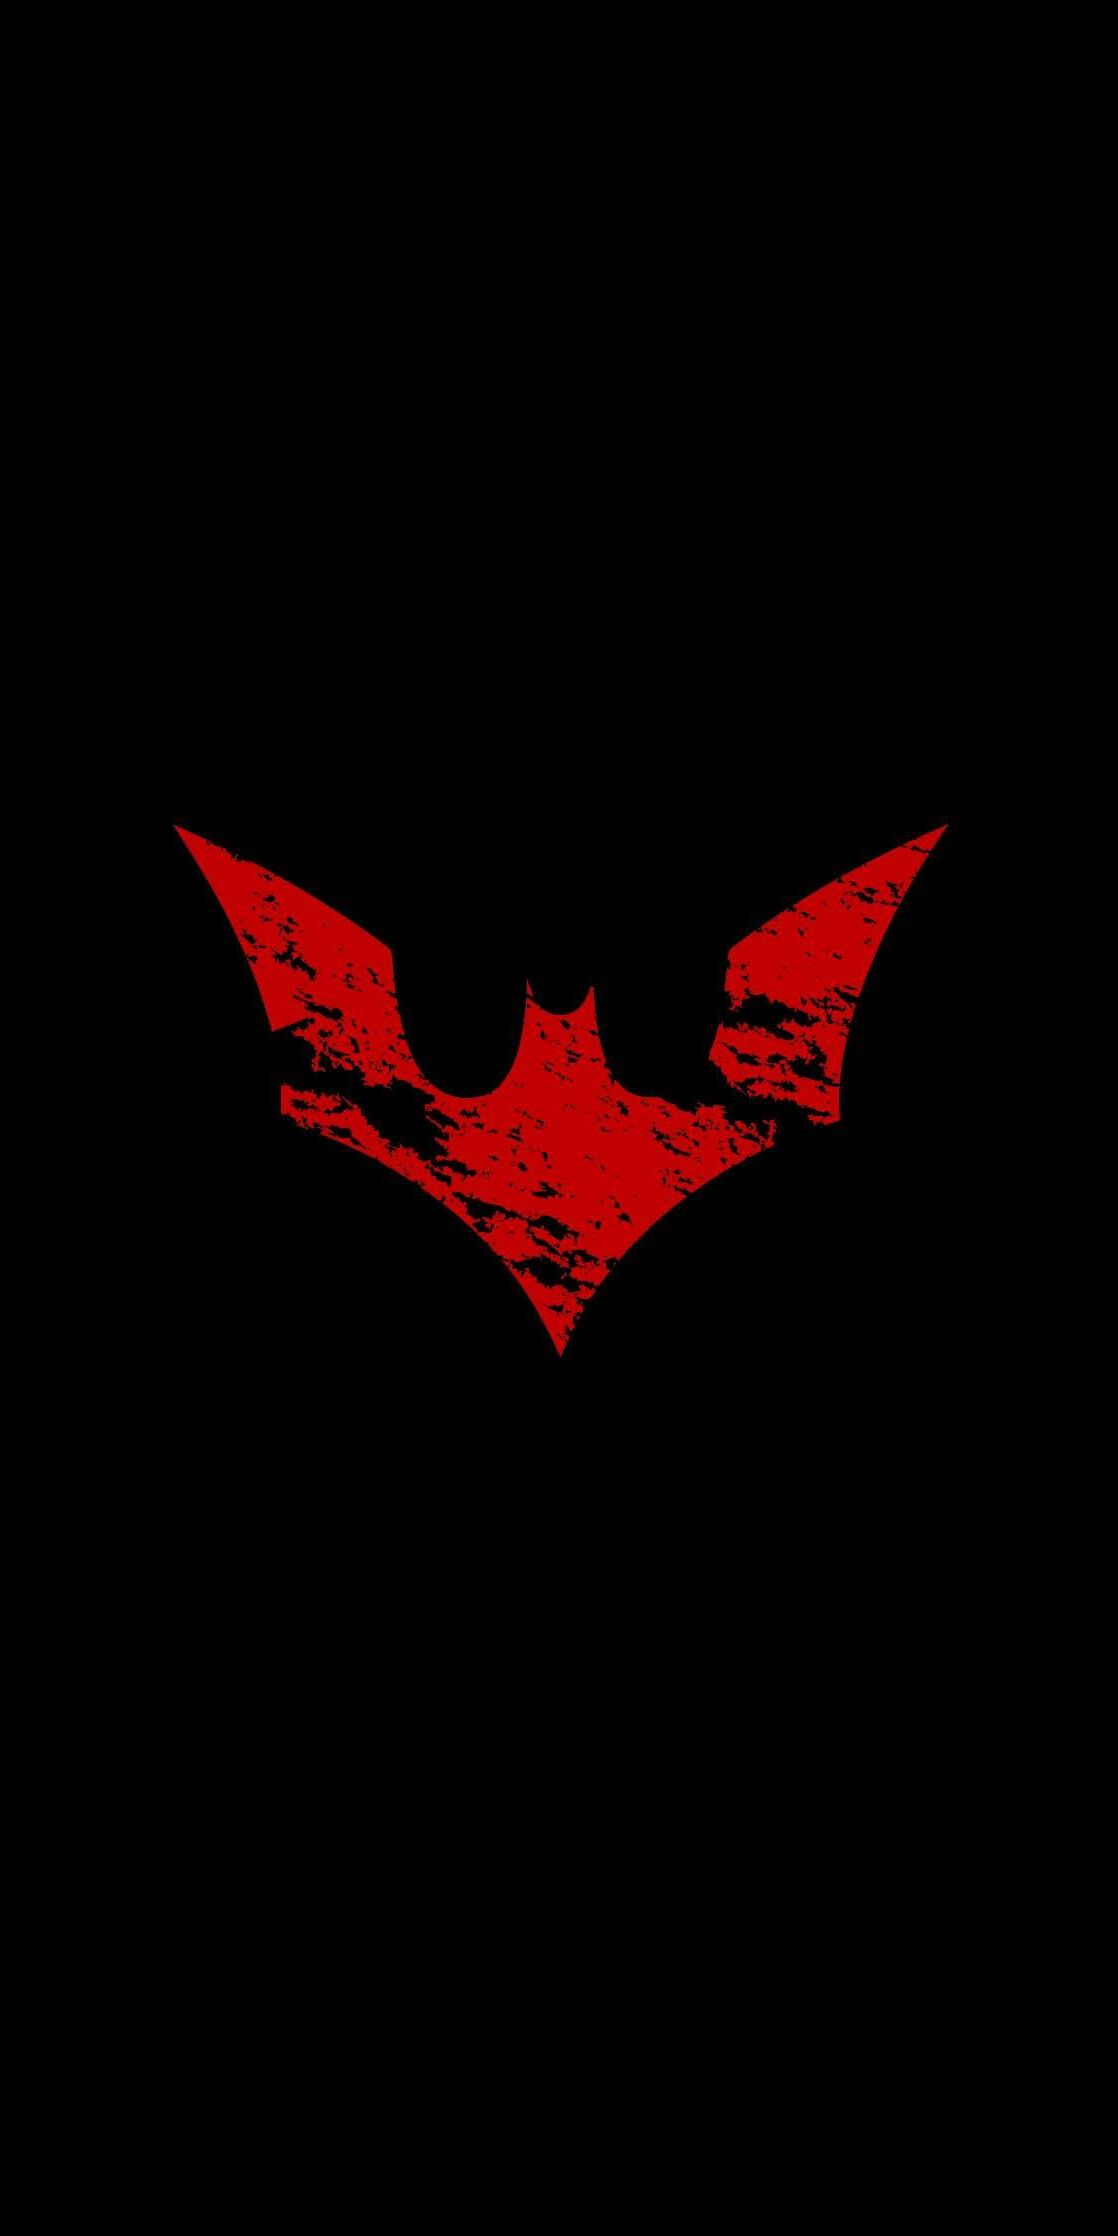 Batman New Logo Iphone Wallpaper Batman Wallpaper Iphone Marvel Phone Wallpaper Batman Wallpaper